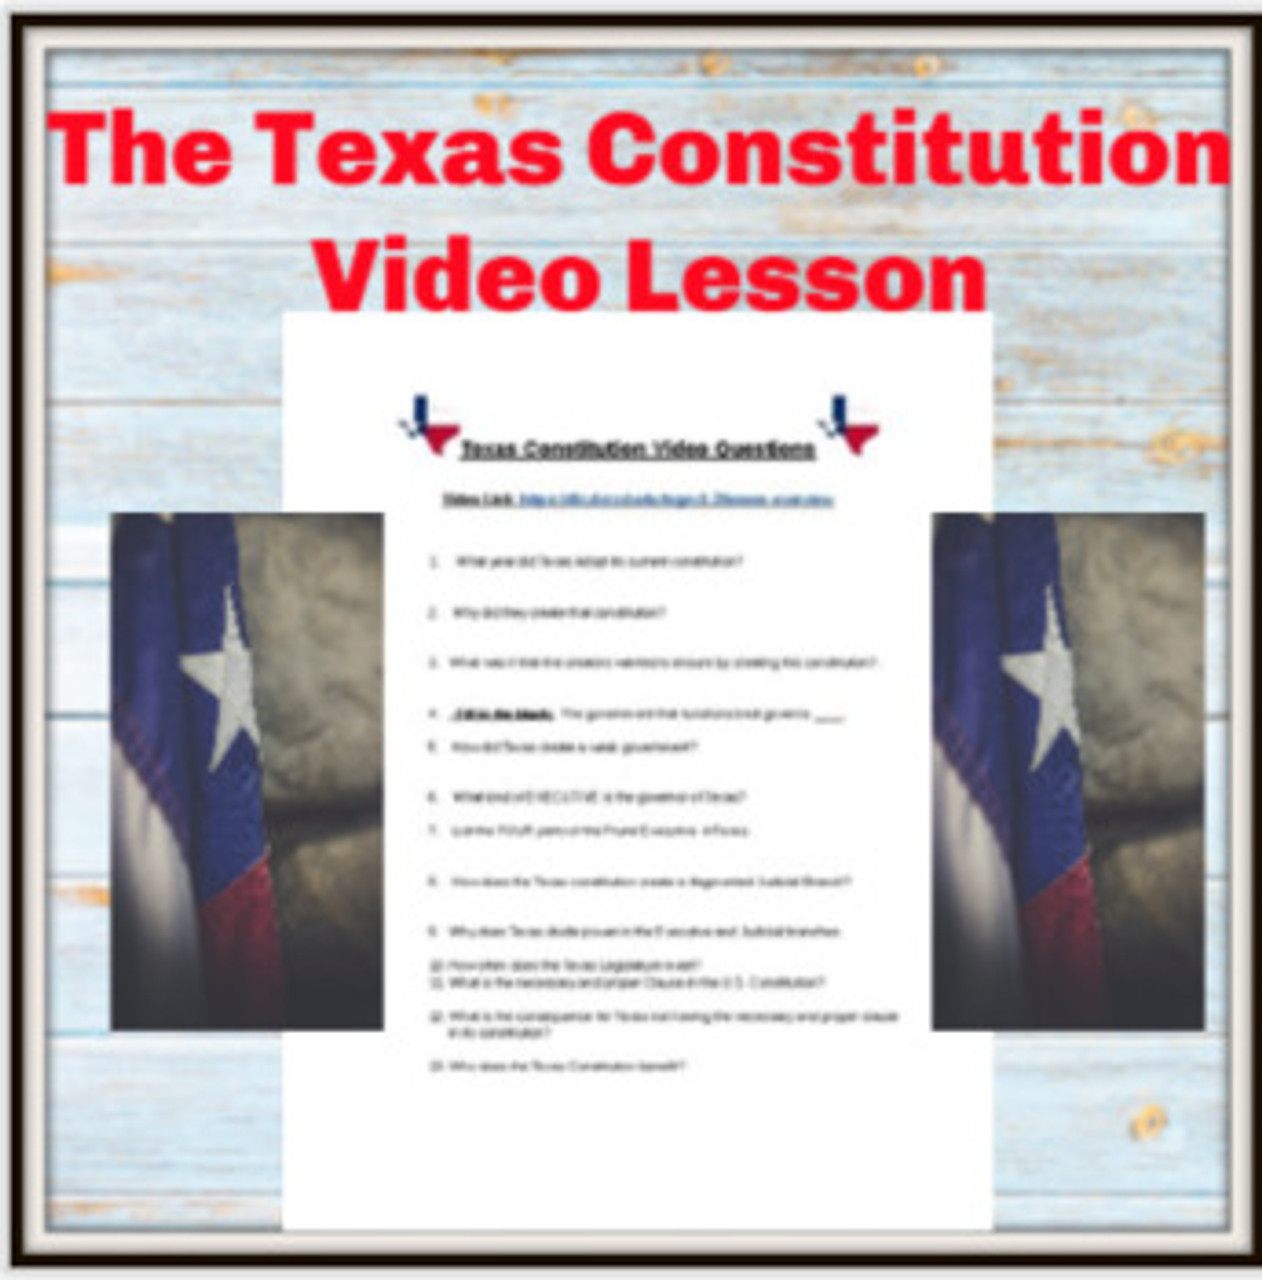 Texas Constitution Video Lesson - Ready for Distance Learning